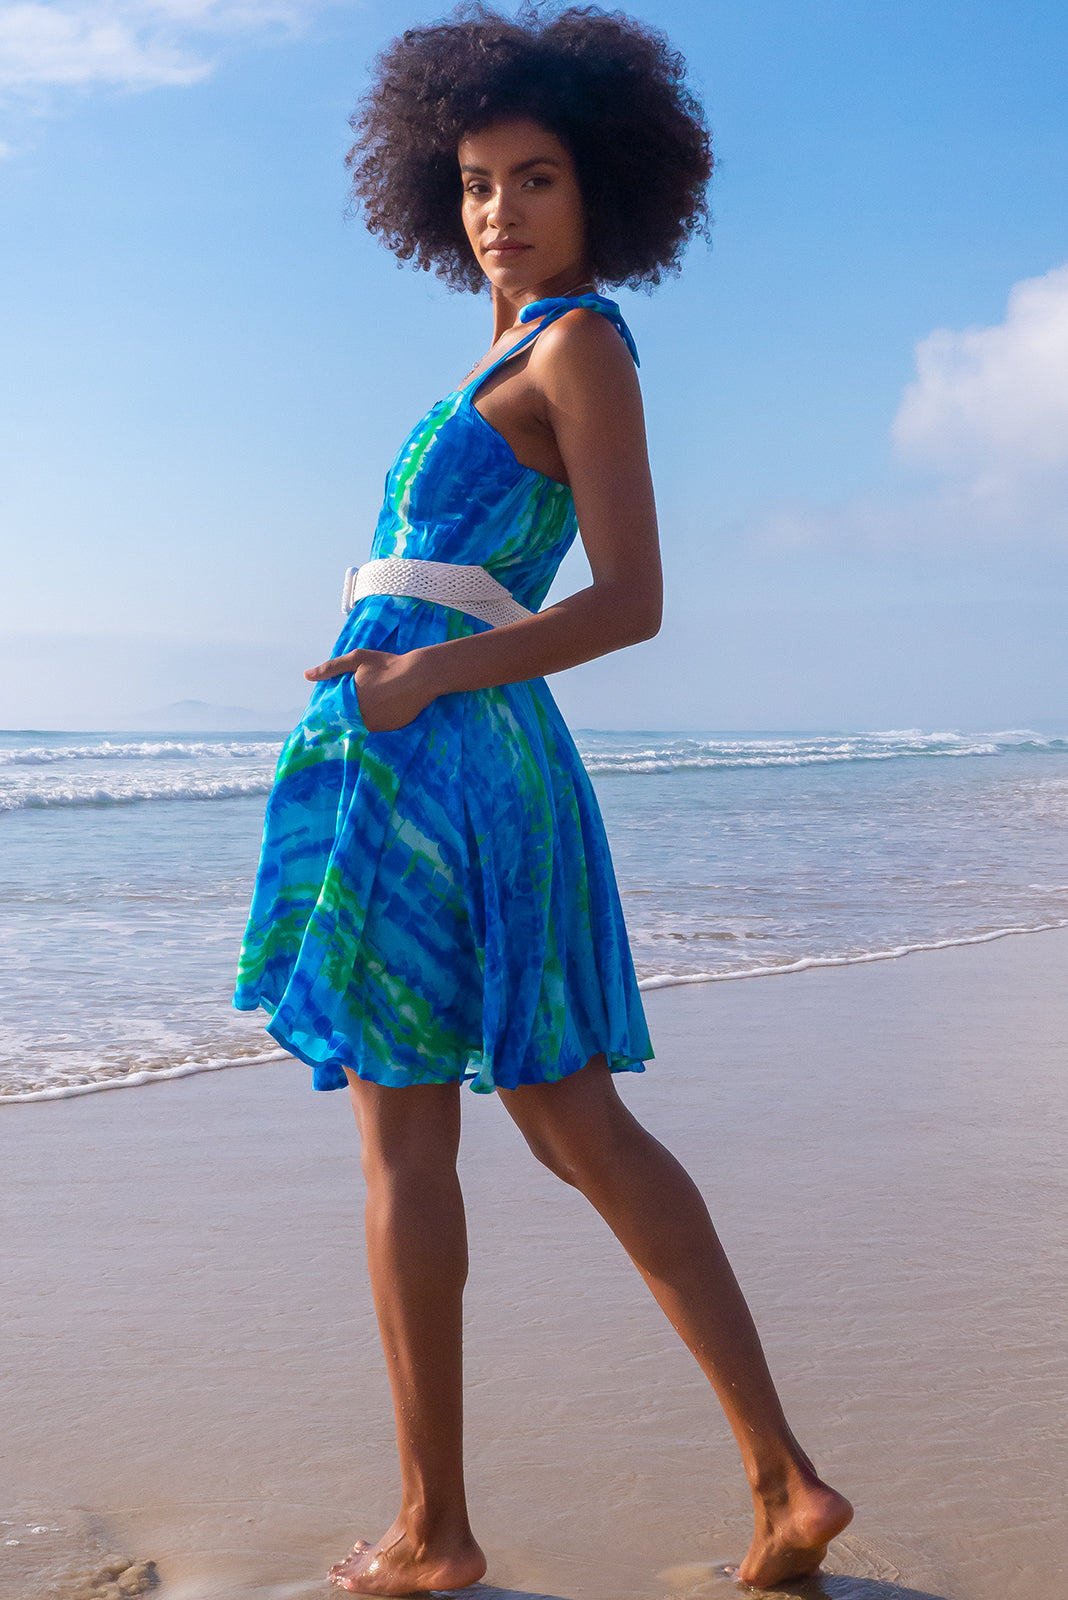 The coolest blue tie dye dress, the Ruby Tuesday Bolo Blue Dress features 100% viscose, straight neckline, tie up shoulder straps, button front and it comes with white woven belt.